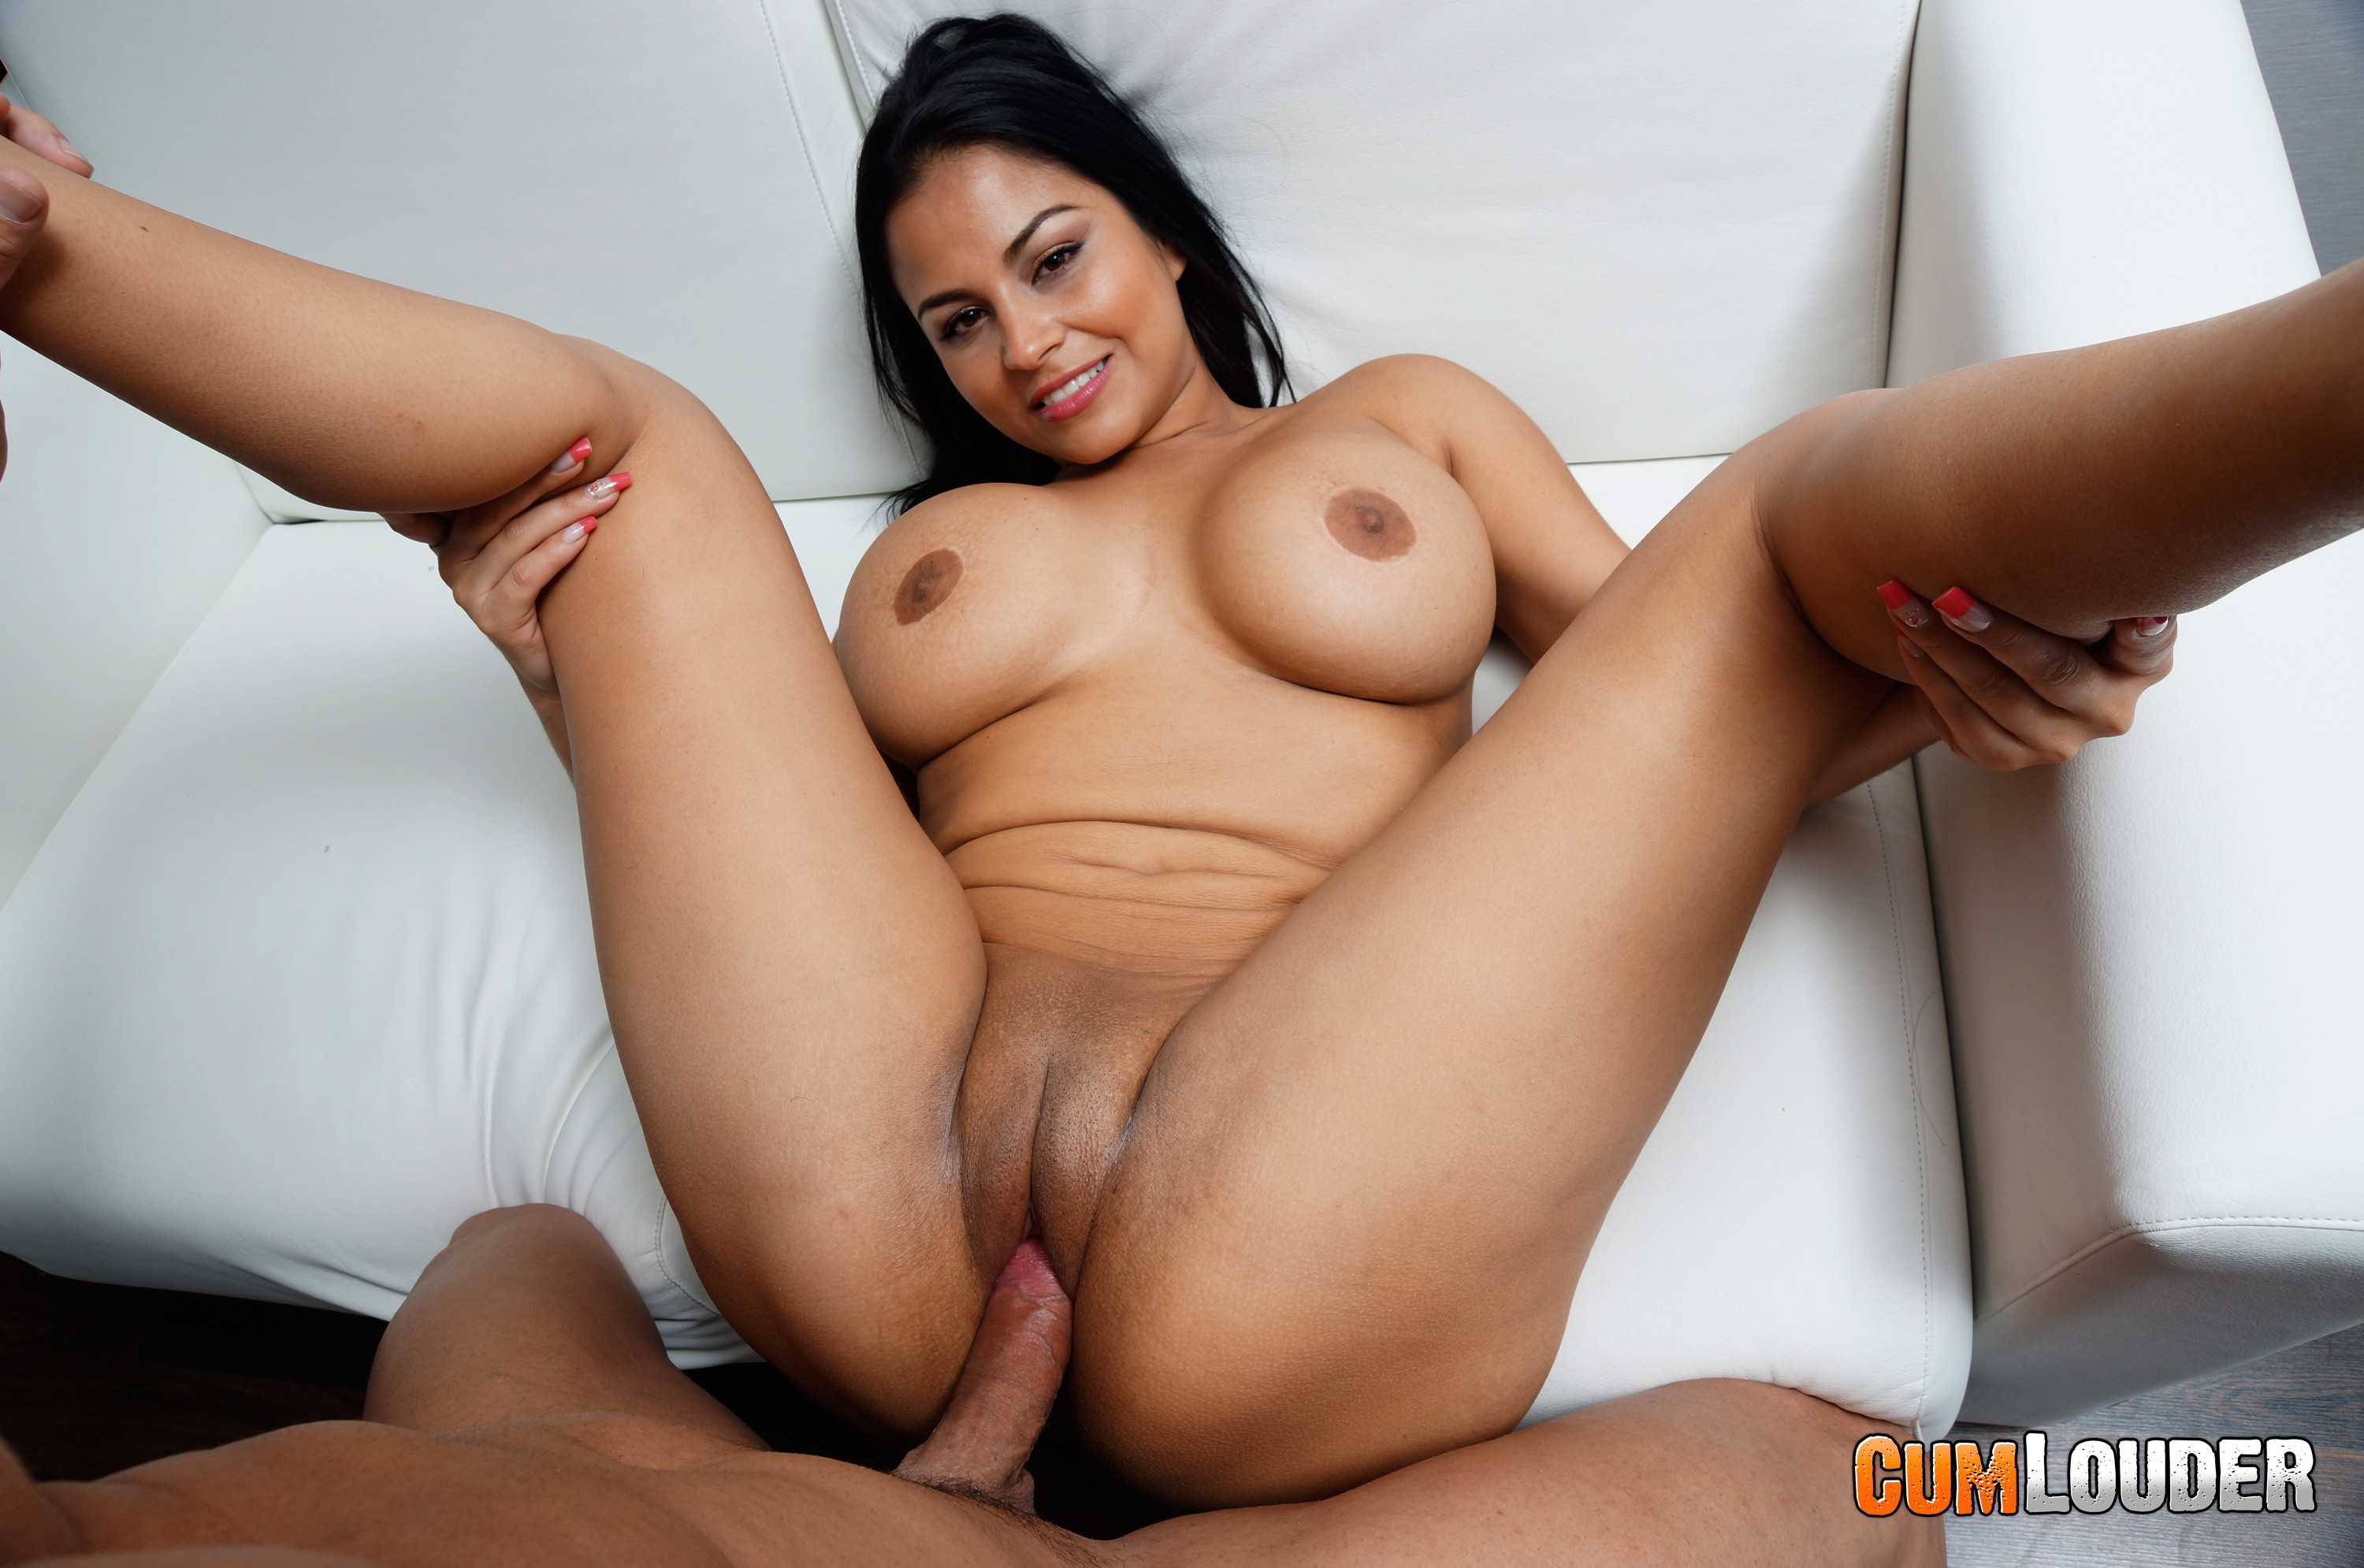 Sugar sex latinas sex movies big pussy hot